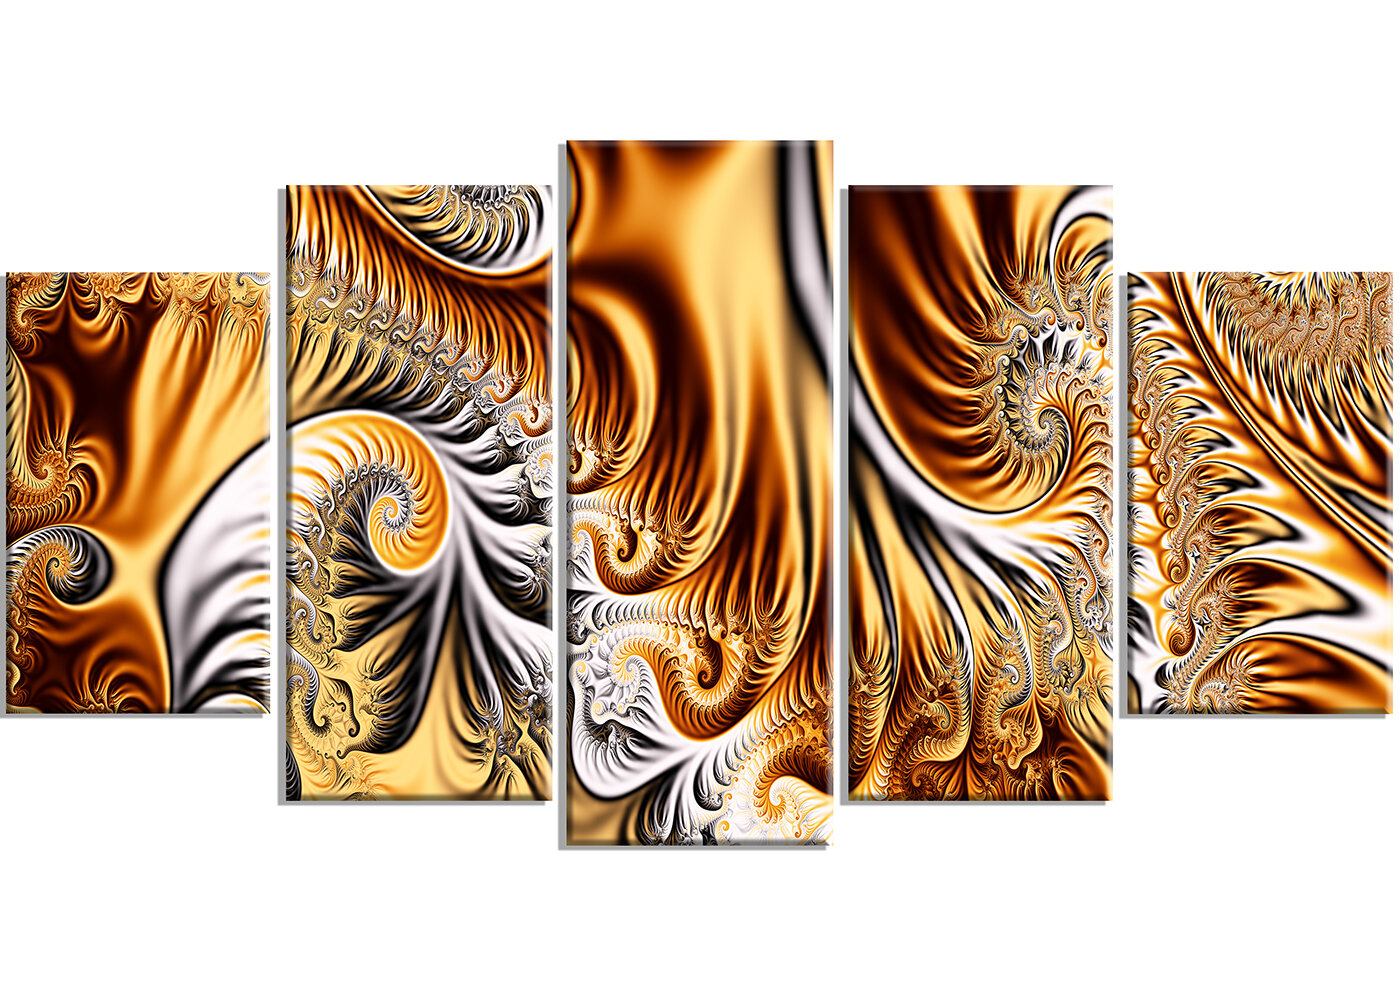 Designart Gold Silver Ribbons 5 Piece Graphic Art On Wrapped Canvas Set Wayfair